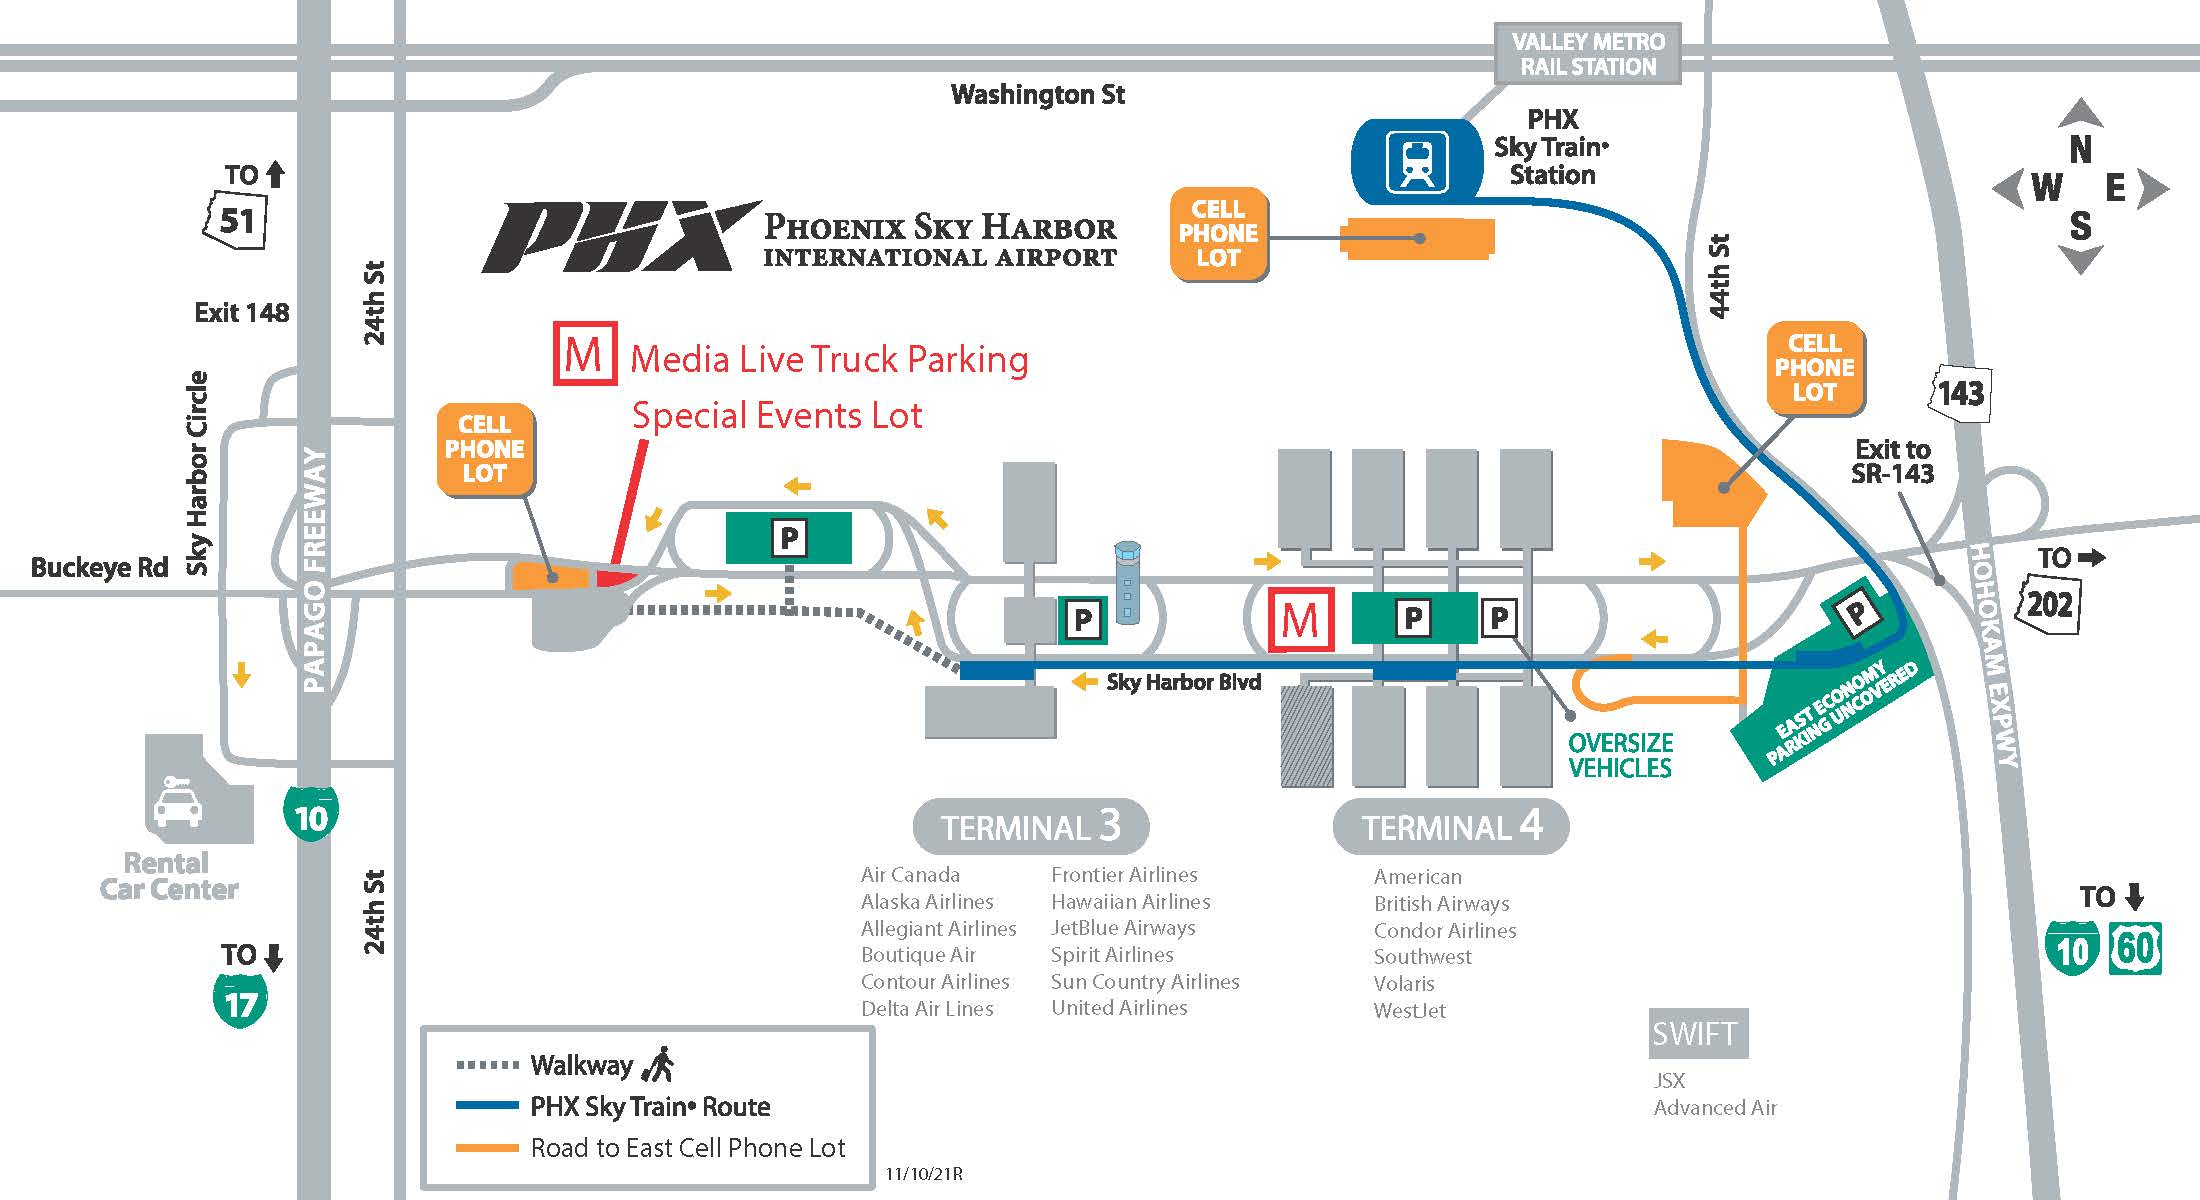 Media Sky Harbor Airport Parking Map on sky harbor luggage map, atlanta airport parking map, denver airport parking map, sky harbor terminal 2 parking, charlotte douglas international airport parking map, hartsfield airport parking map, mccarran airport parking map, sky harbor sky train map, sky harbor terminal 2 map, san jose international airport parking map, sky harbor restaurant map, seatac airport parking map, myrtle beach airport parking map, sky harbor car rental map, phx sky harbor map, sky harbor terminal 4 gate map, boston logan airport parking map, ontario airport parking map, midway airport parking map, o'hare international airport parking map,